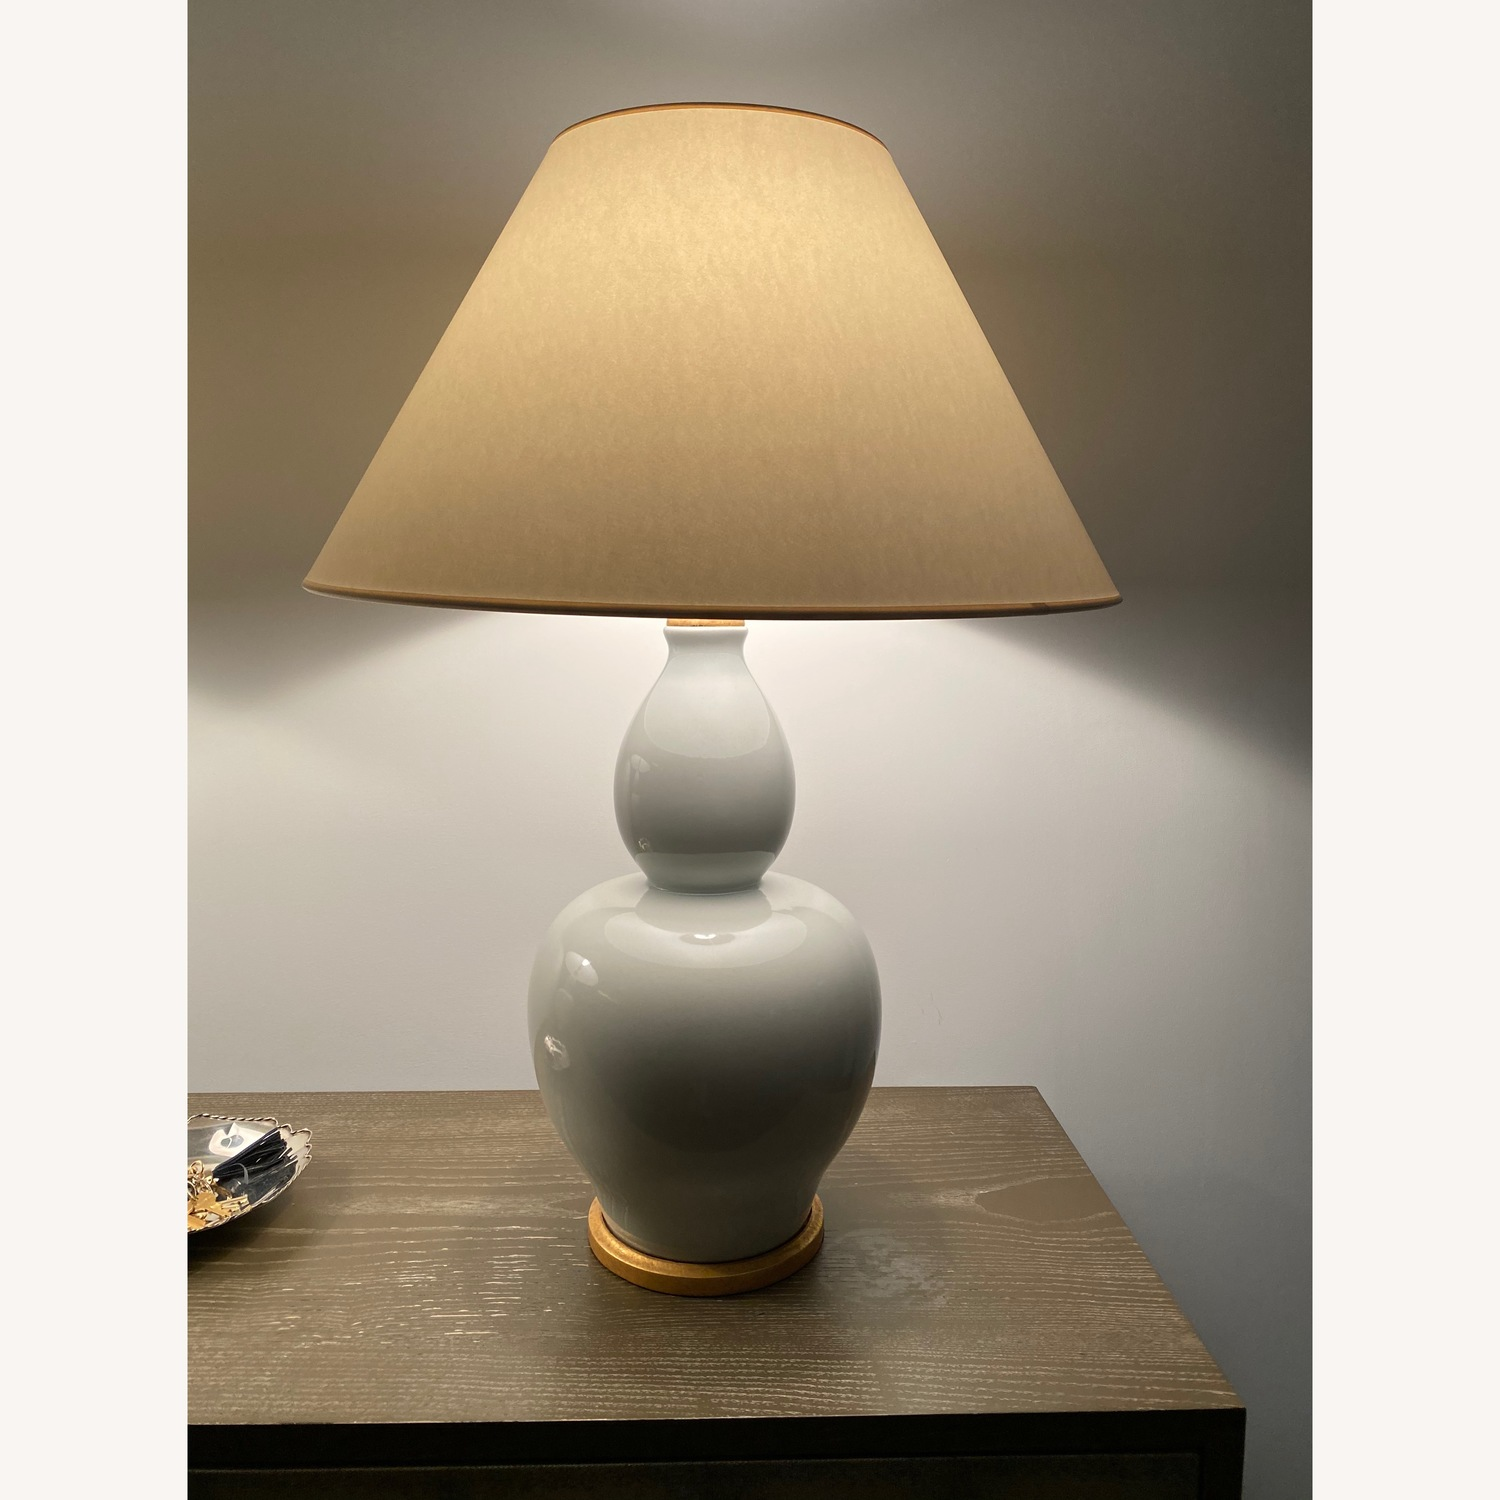 Circa Lighting Yue Double Gourd Table Lamp Set of 2 - image-2